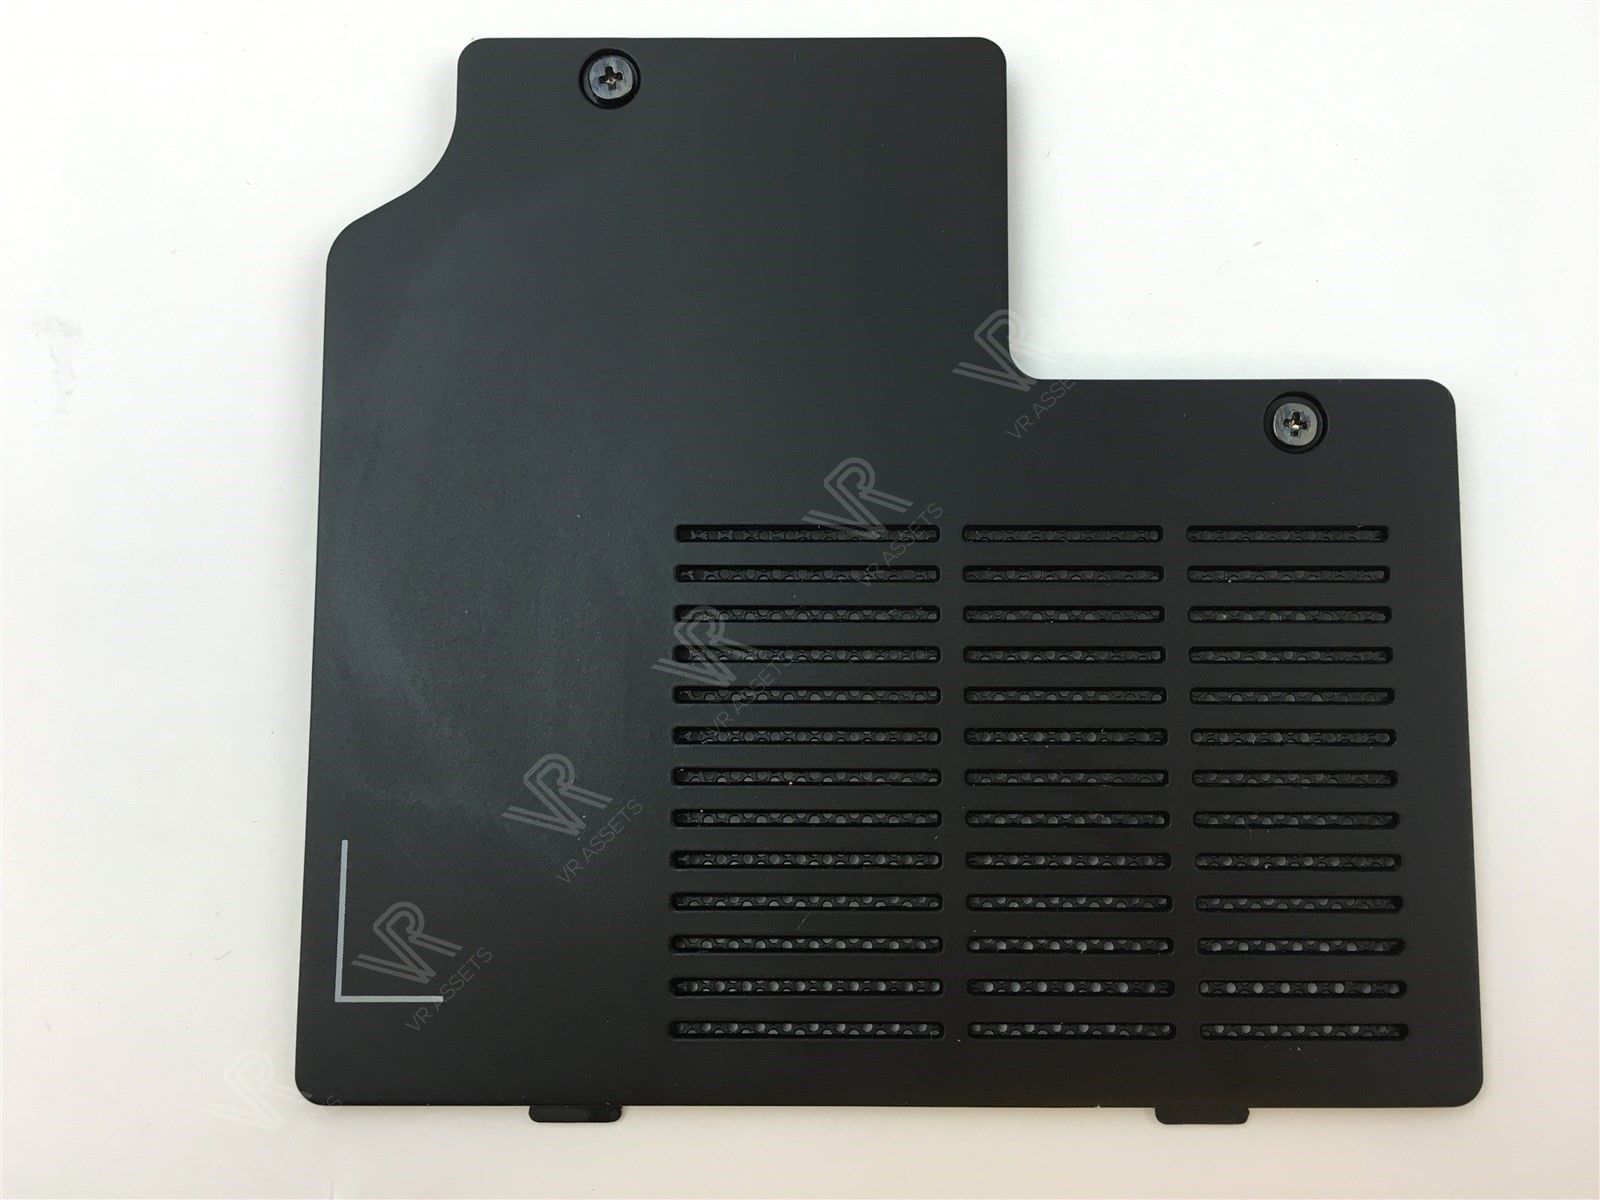 Dell Inspiron 1720 Vostro 1700 Laptop WiFi Cover Door Black Housing KU864 0KU864